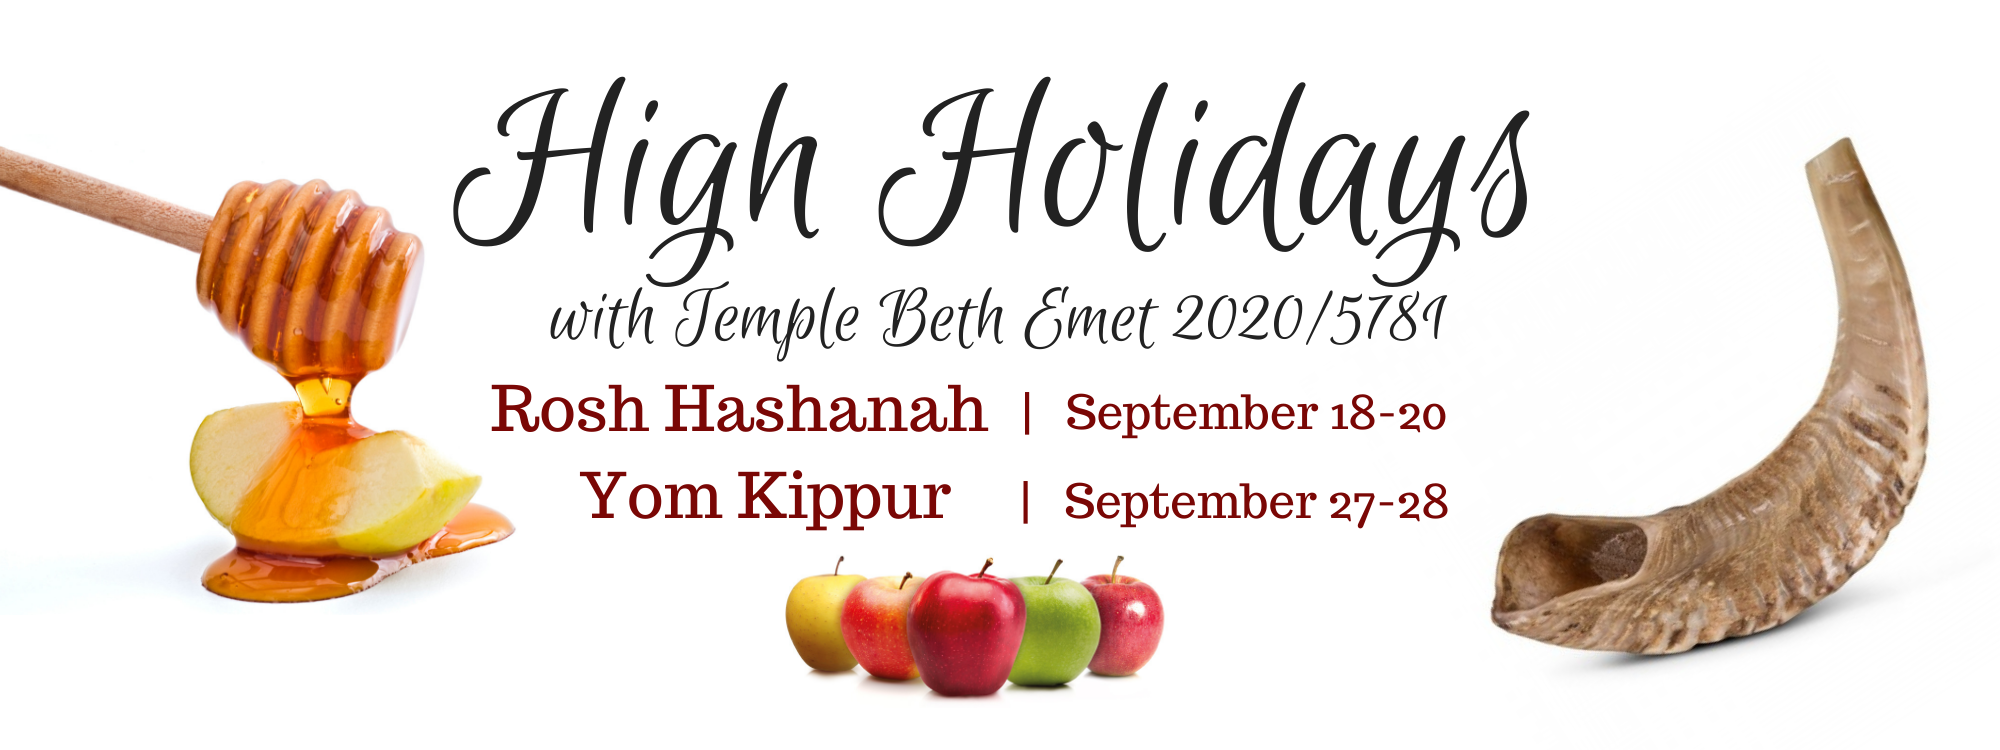 """</a>                                                                                                                                                                                       <span class=""""slider_description"""">Everything you need to know for the High Holidays!</span>                                                                                     <a href=""""https://www.templebethemet.org/worship/high-holidays-5781"""" class=""""slider_link""""                             target=""""_blank"""">                             Read More                            </a>"""